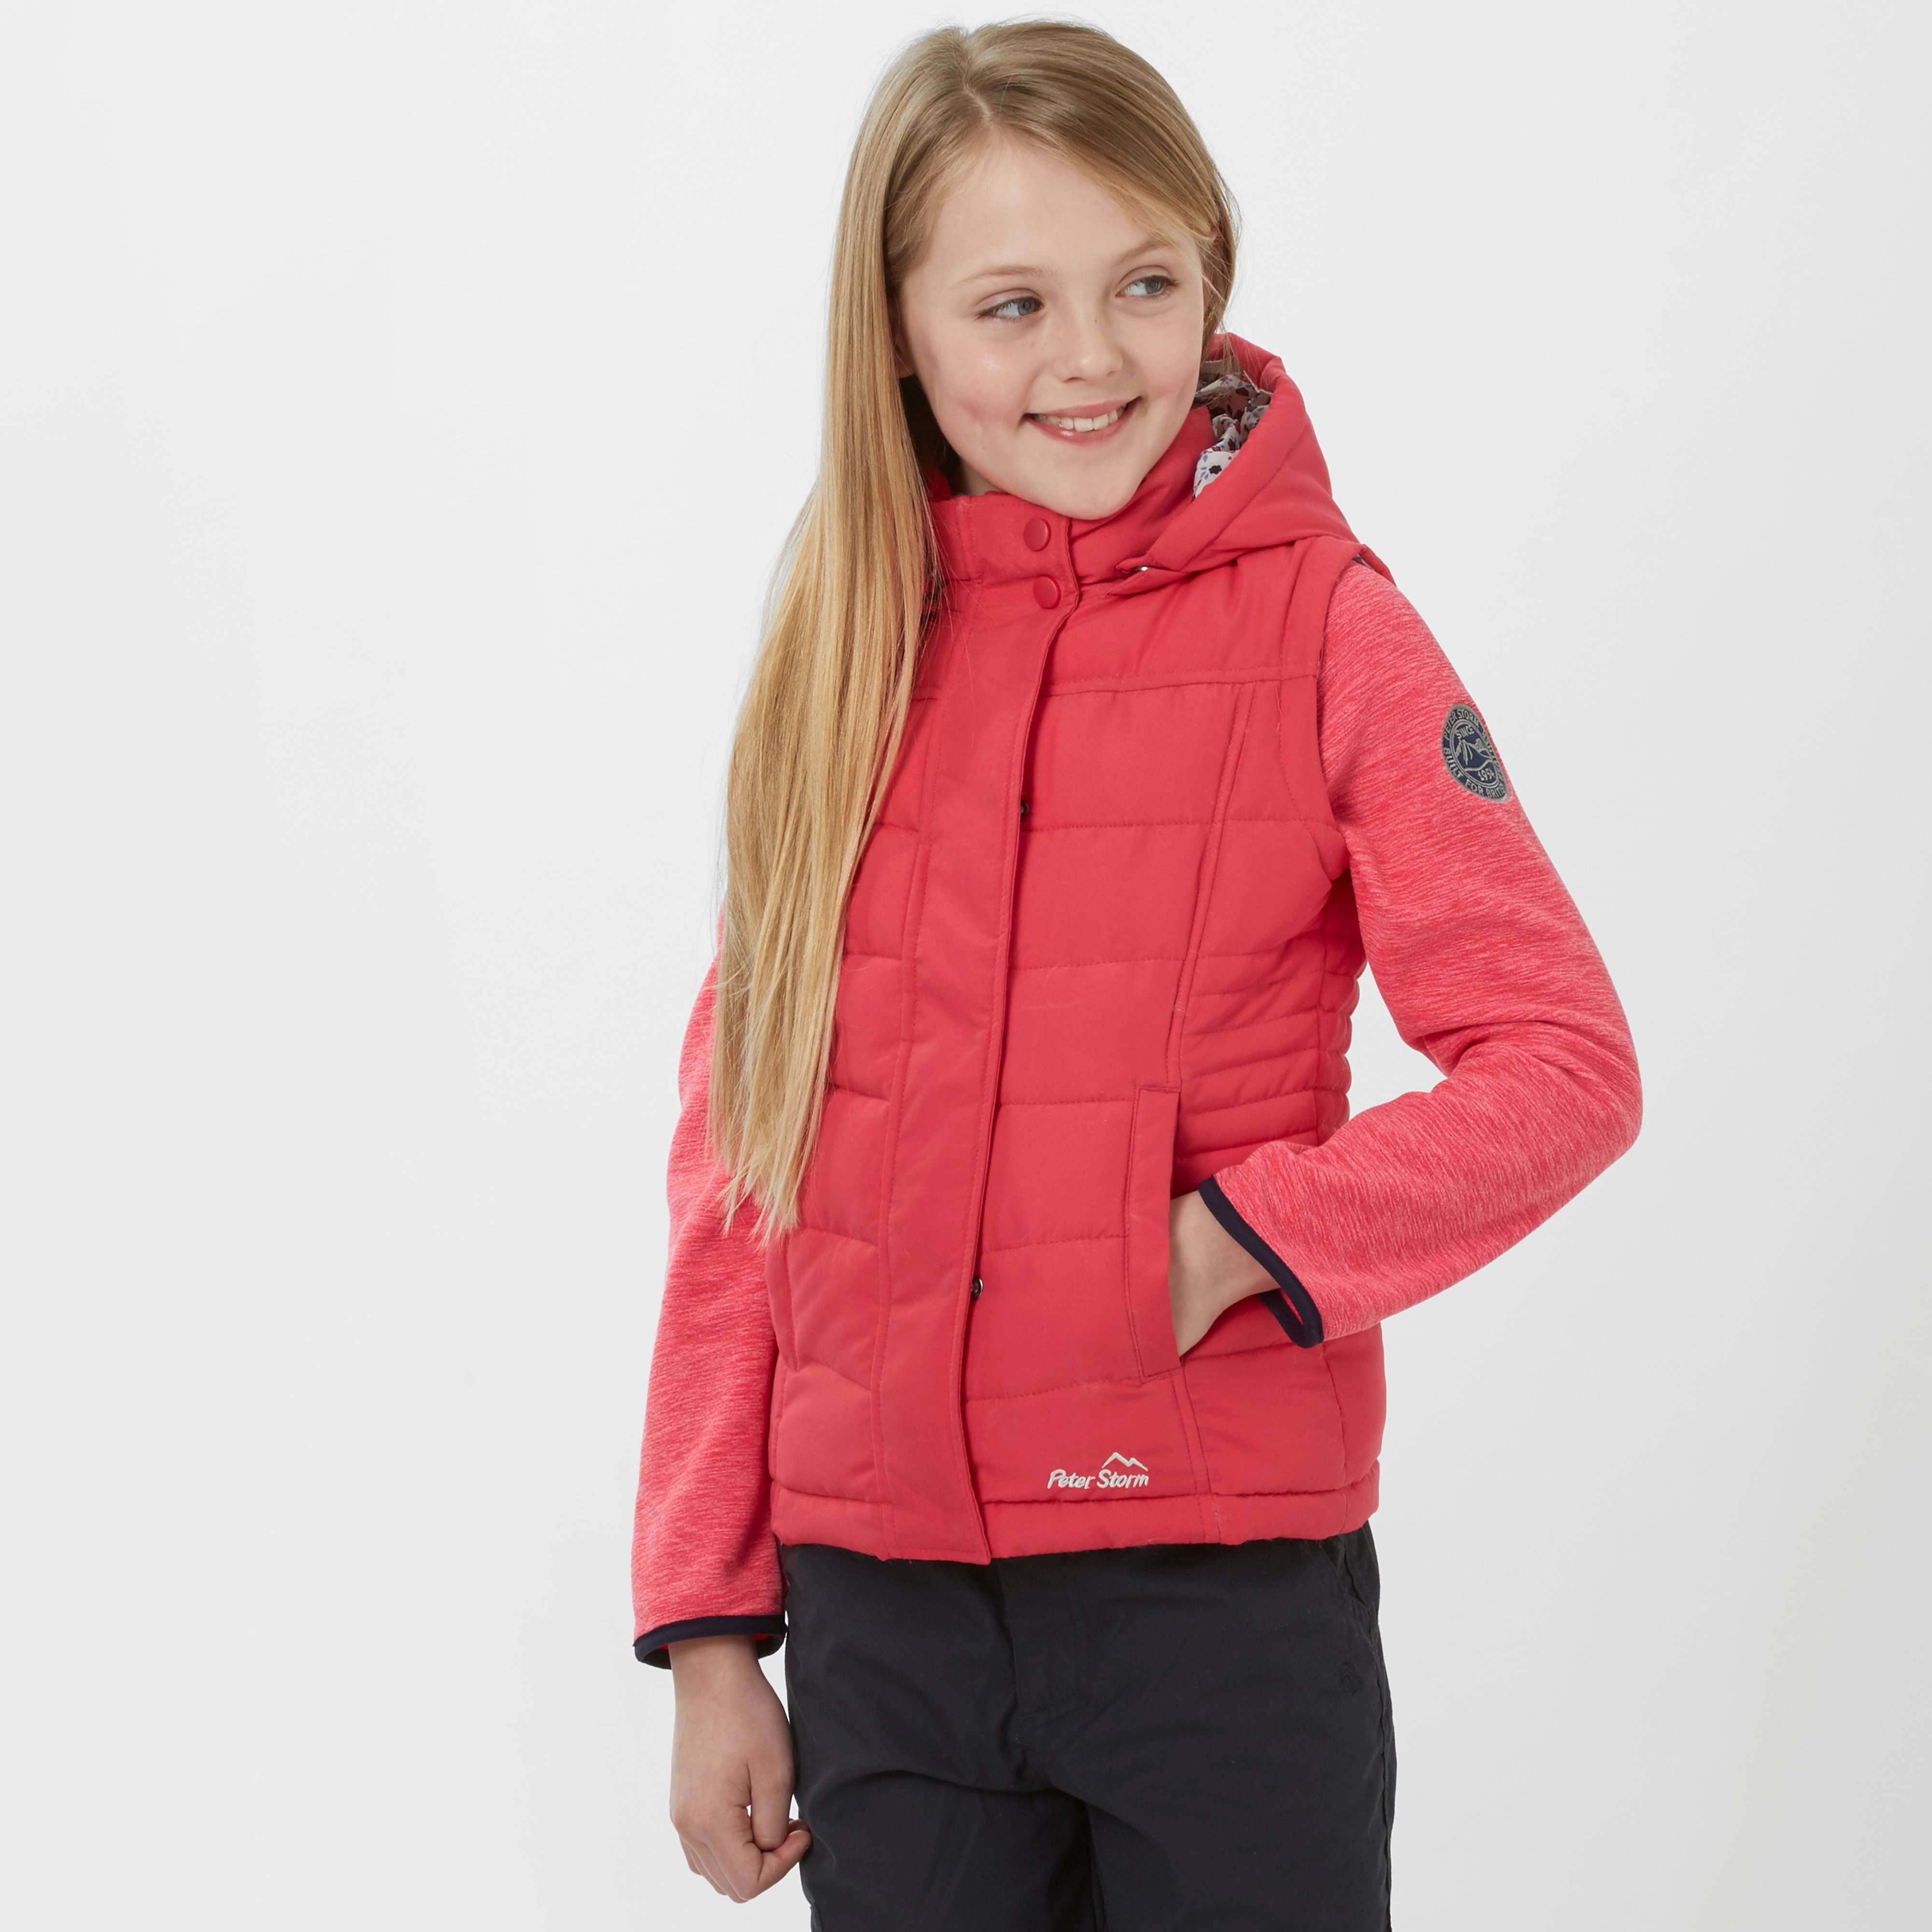 PETER STORM Girls' Daily II Gilet